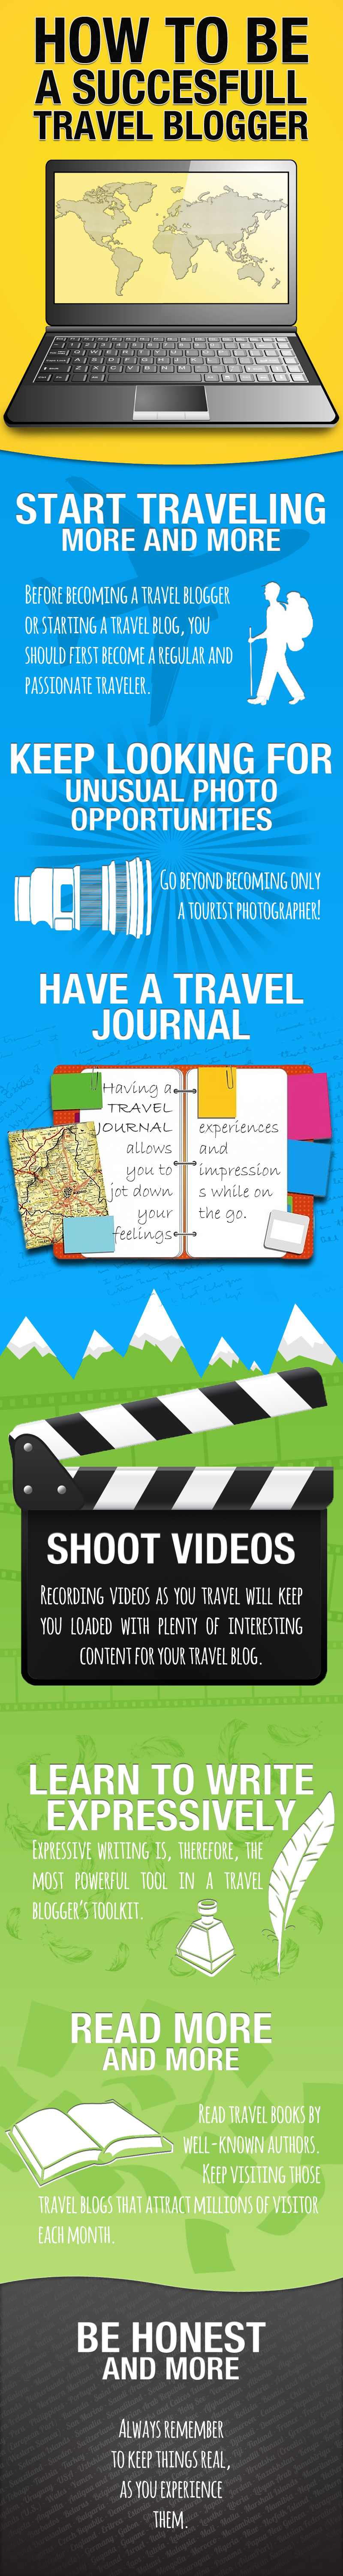 Become Successful Travel Blogger